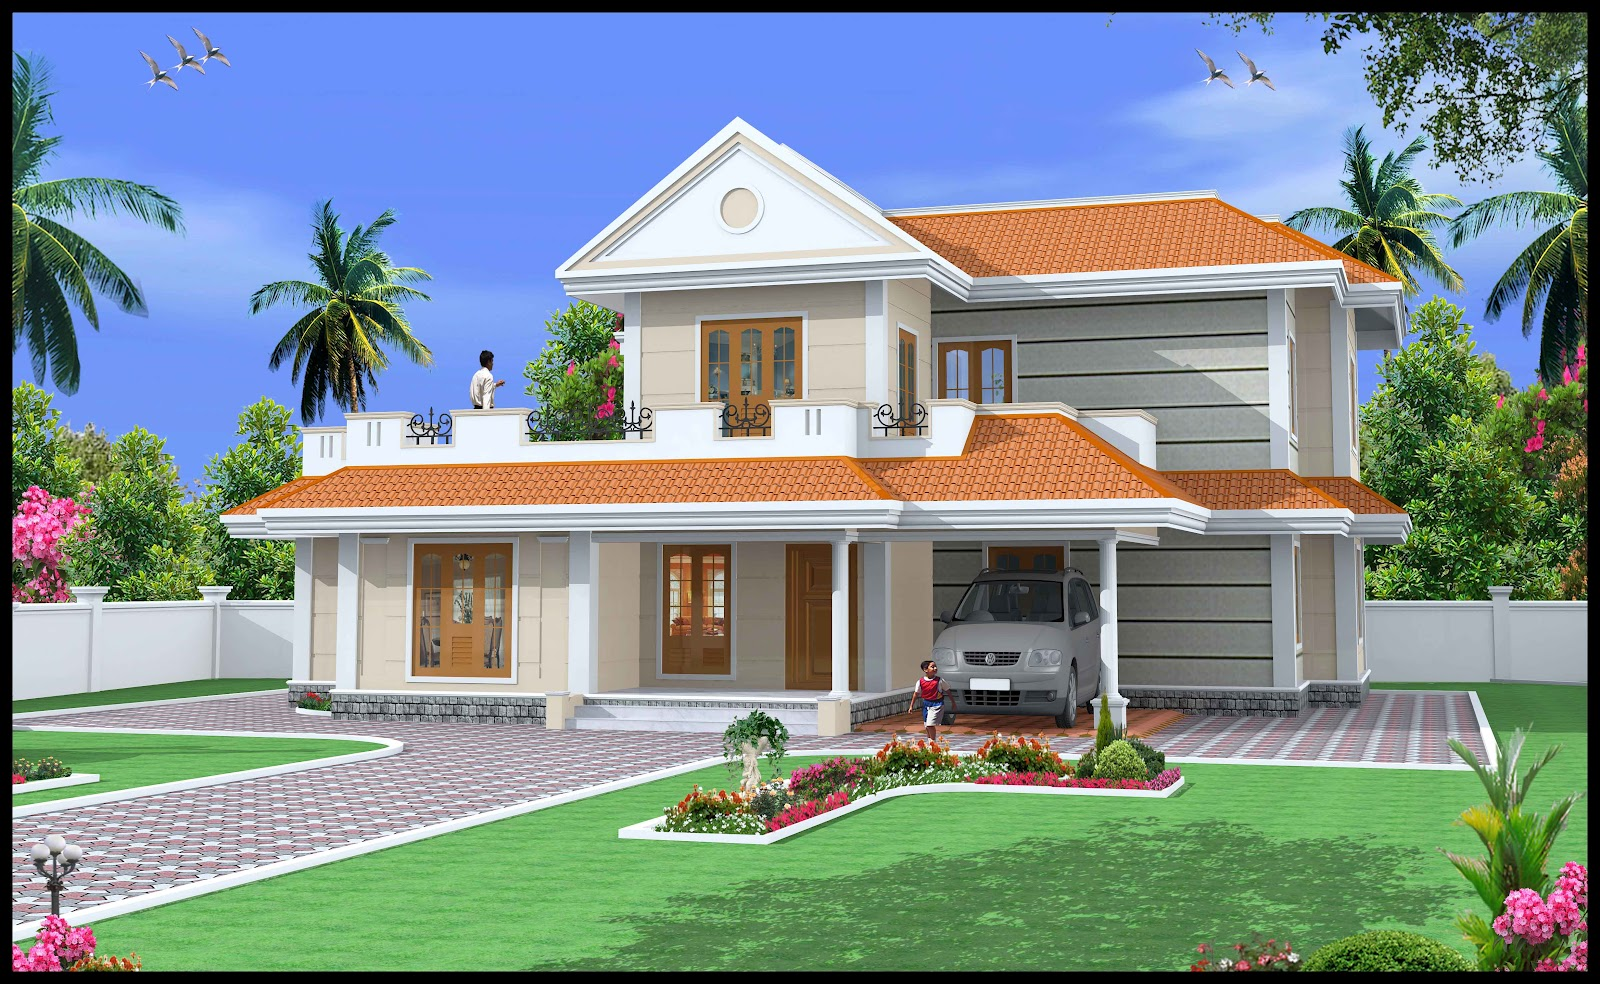 Green Homes Construction: Indian Style Duplex House-2600 ...